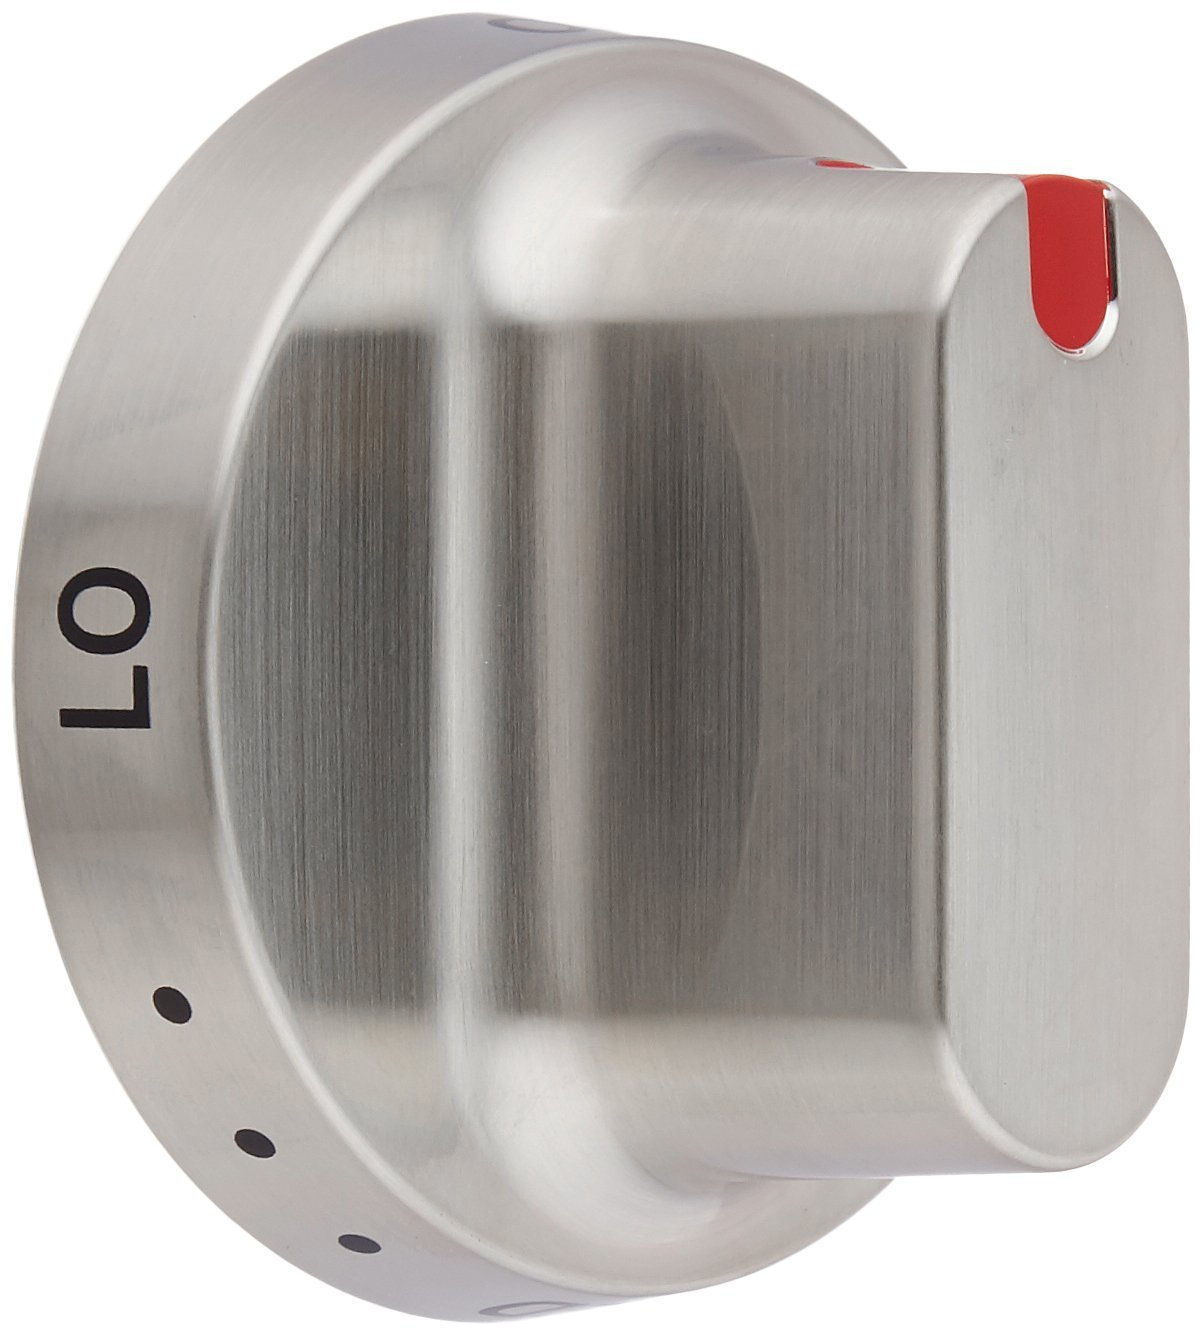 DG64-00347B Dial Knob Replacement for Samsung Range Oven